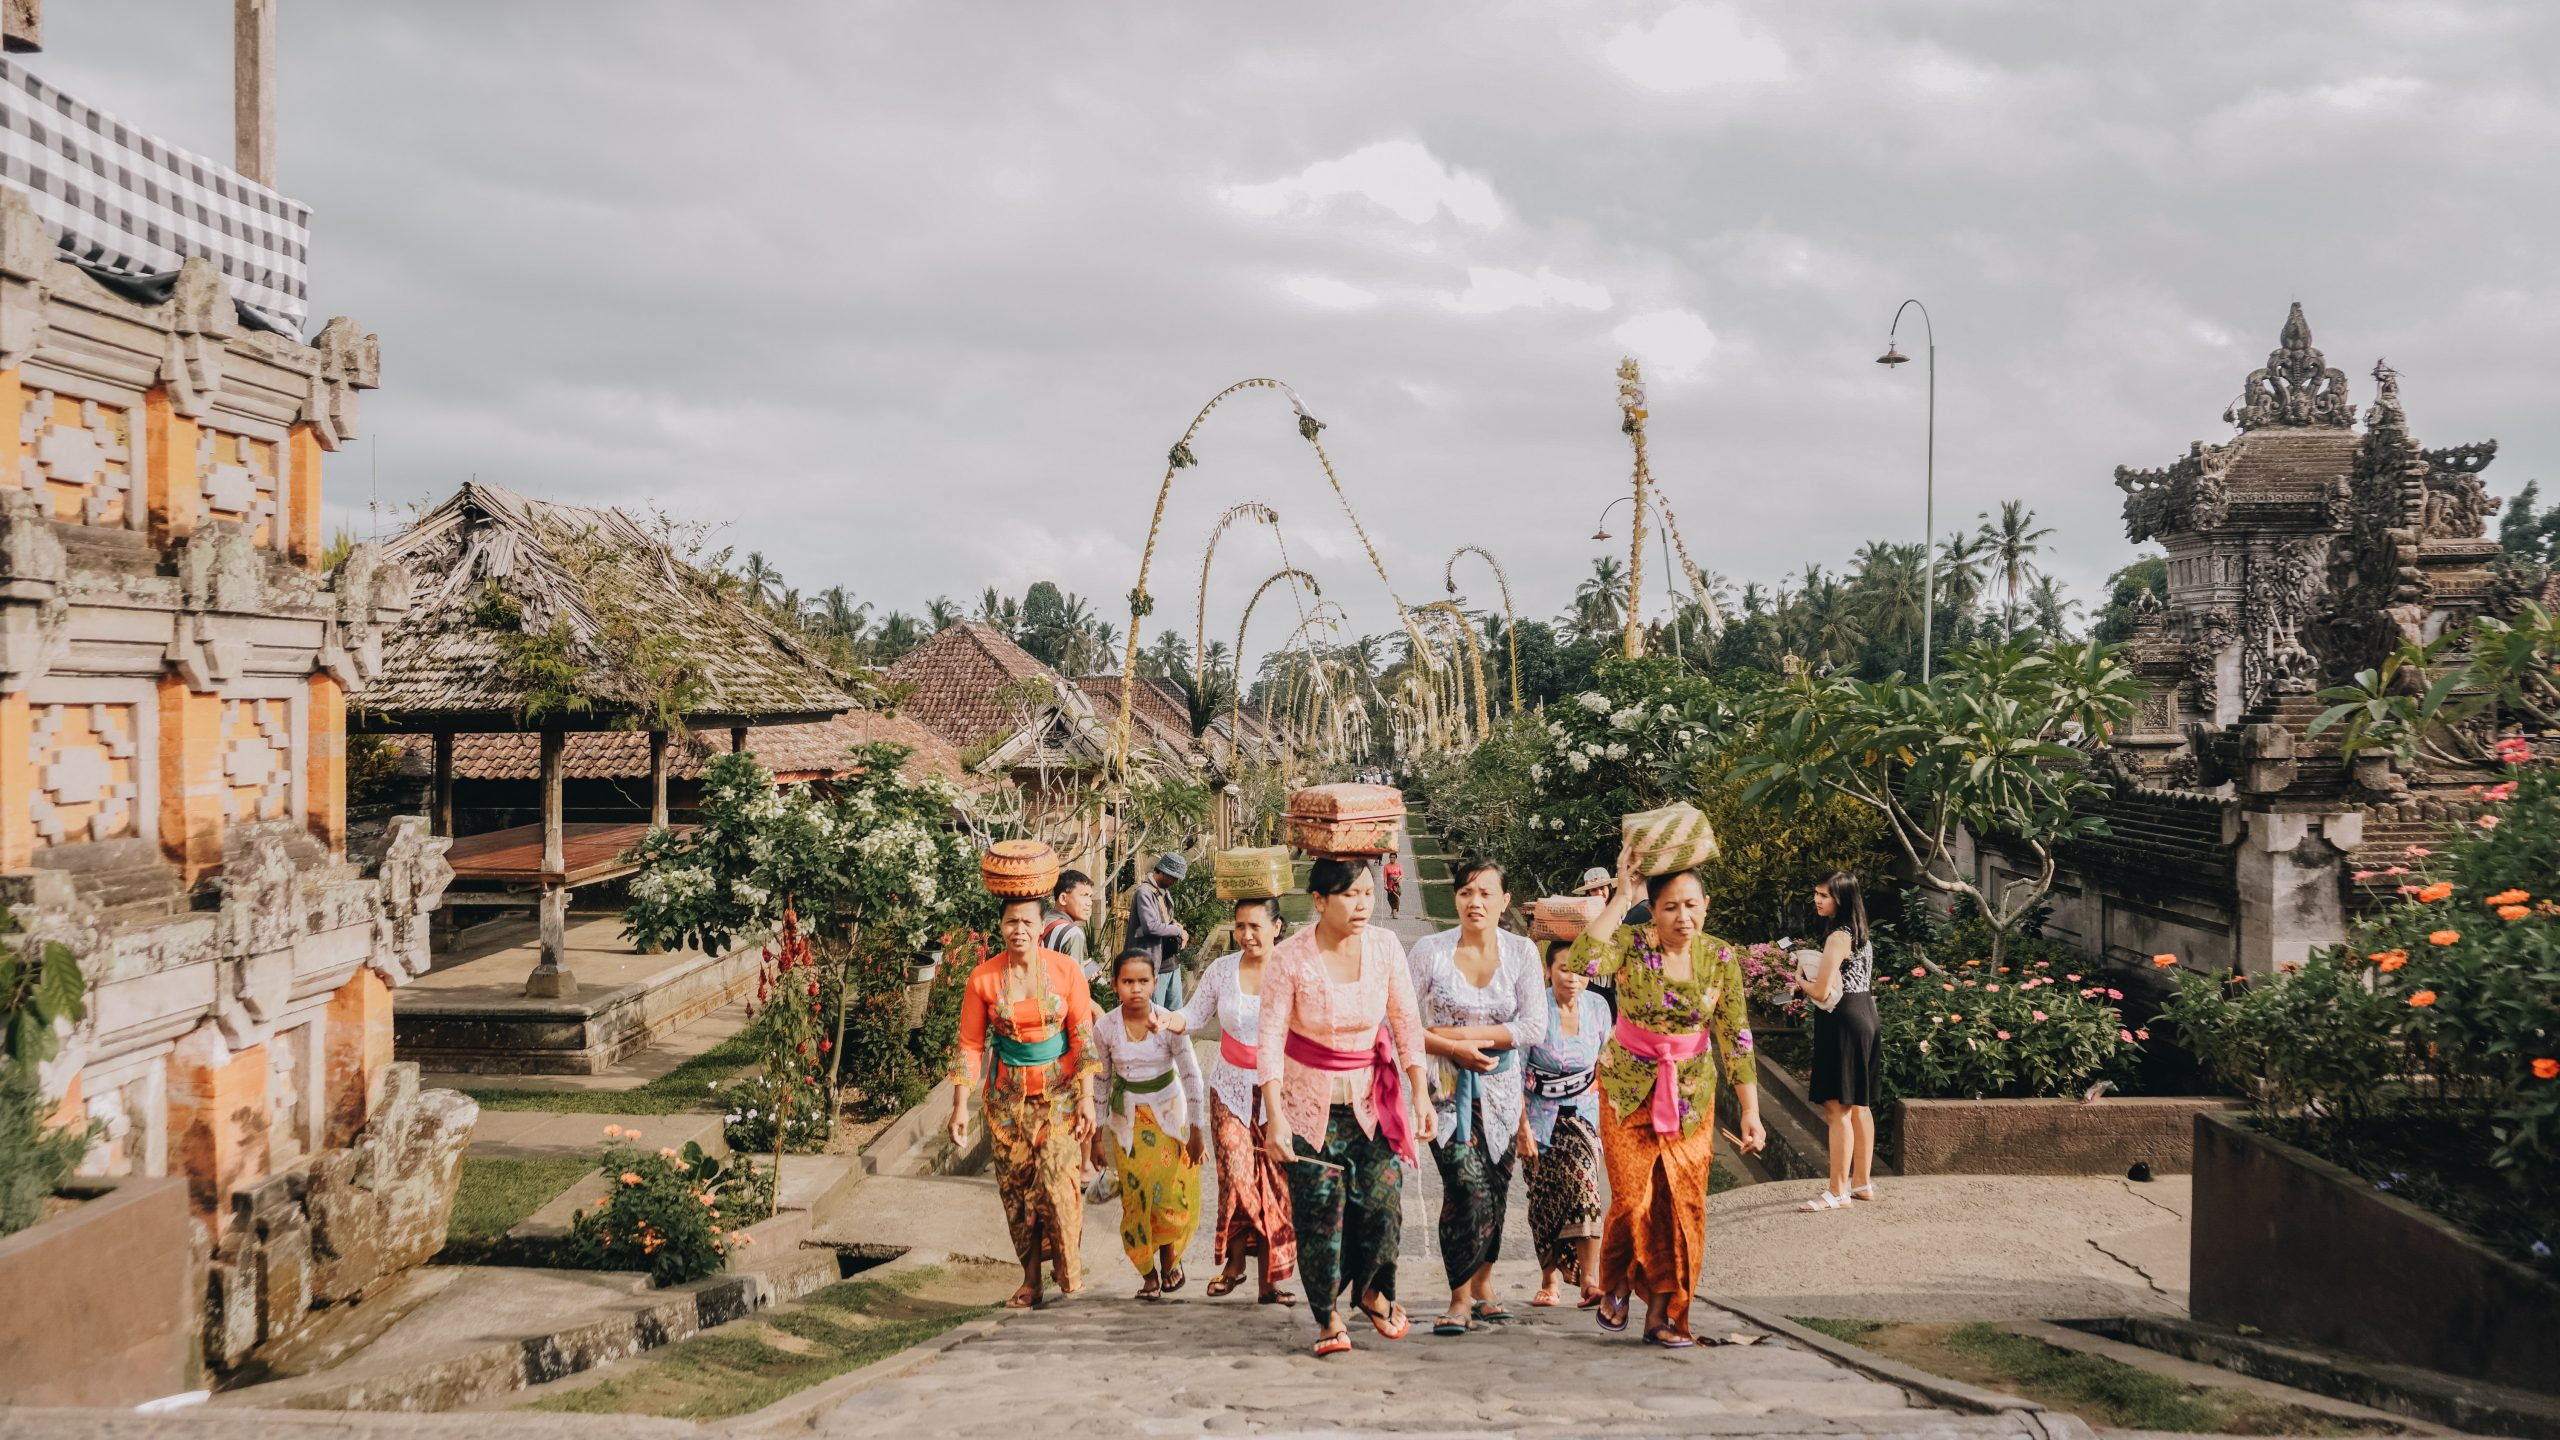 All you need to know about Galungan and Kuningan Celebration in Bali